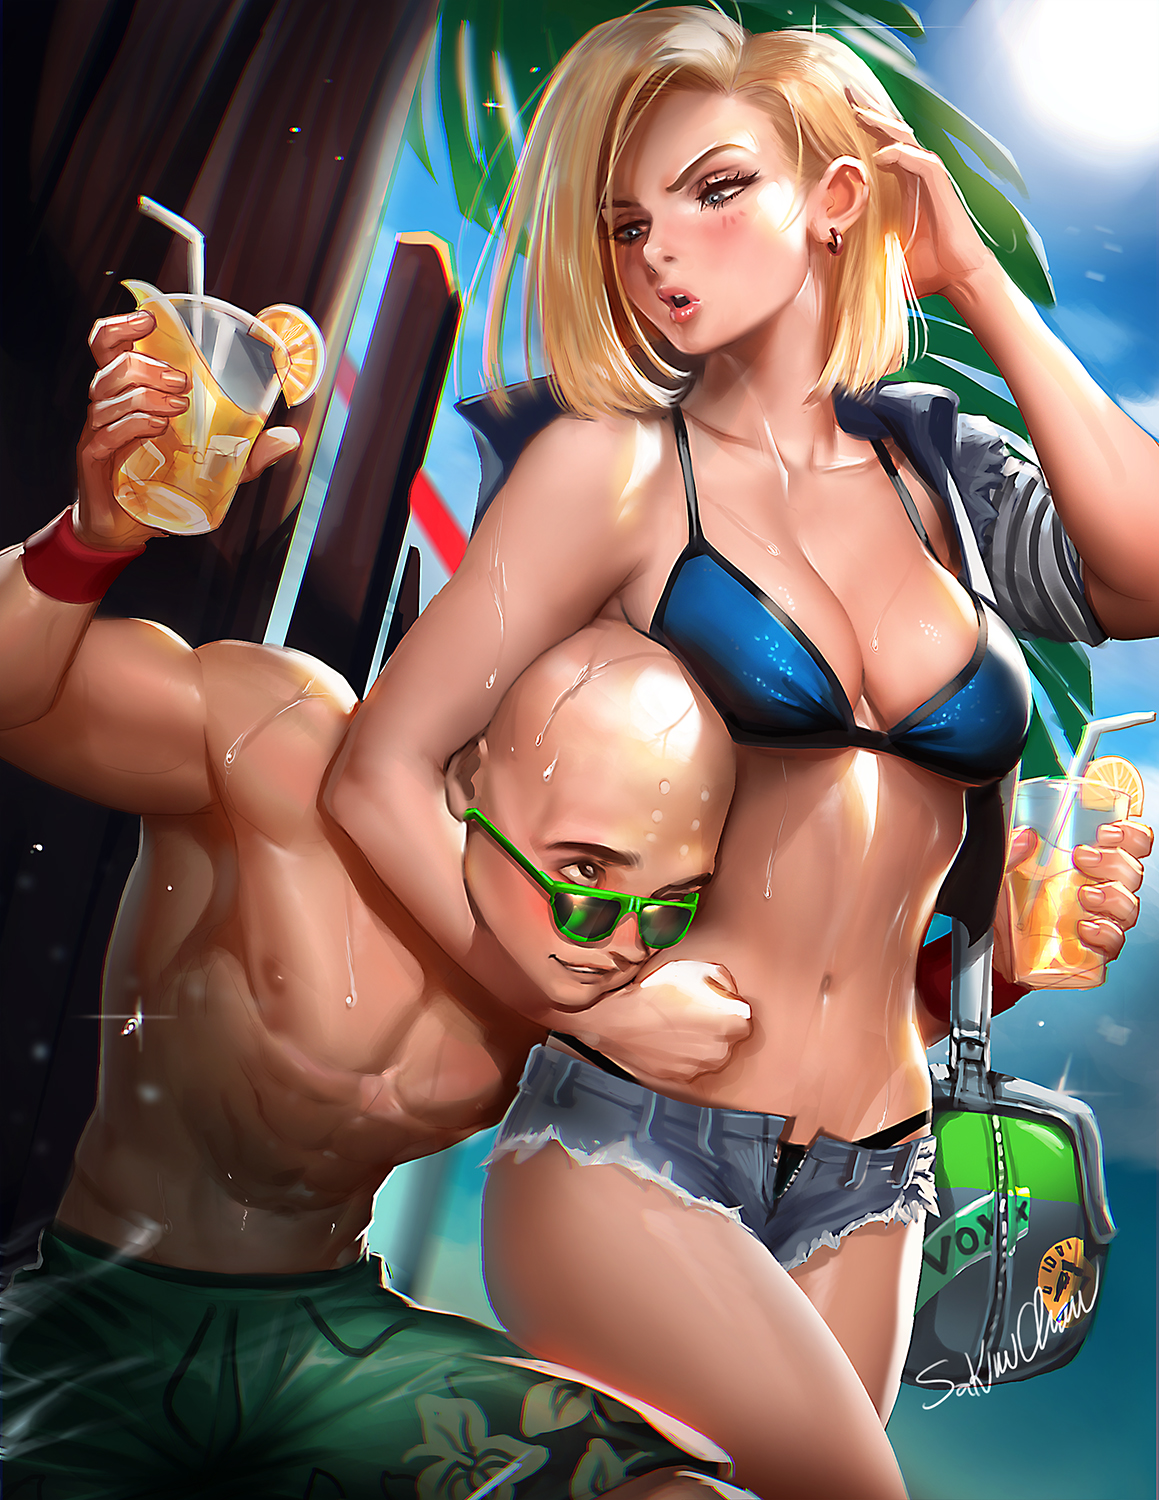 Android 18 porn 3d sexual movie